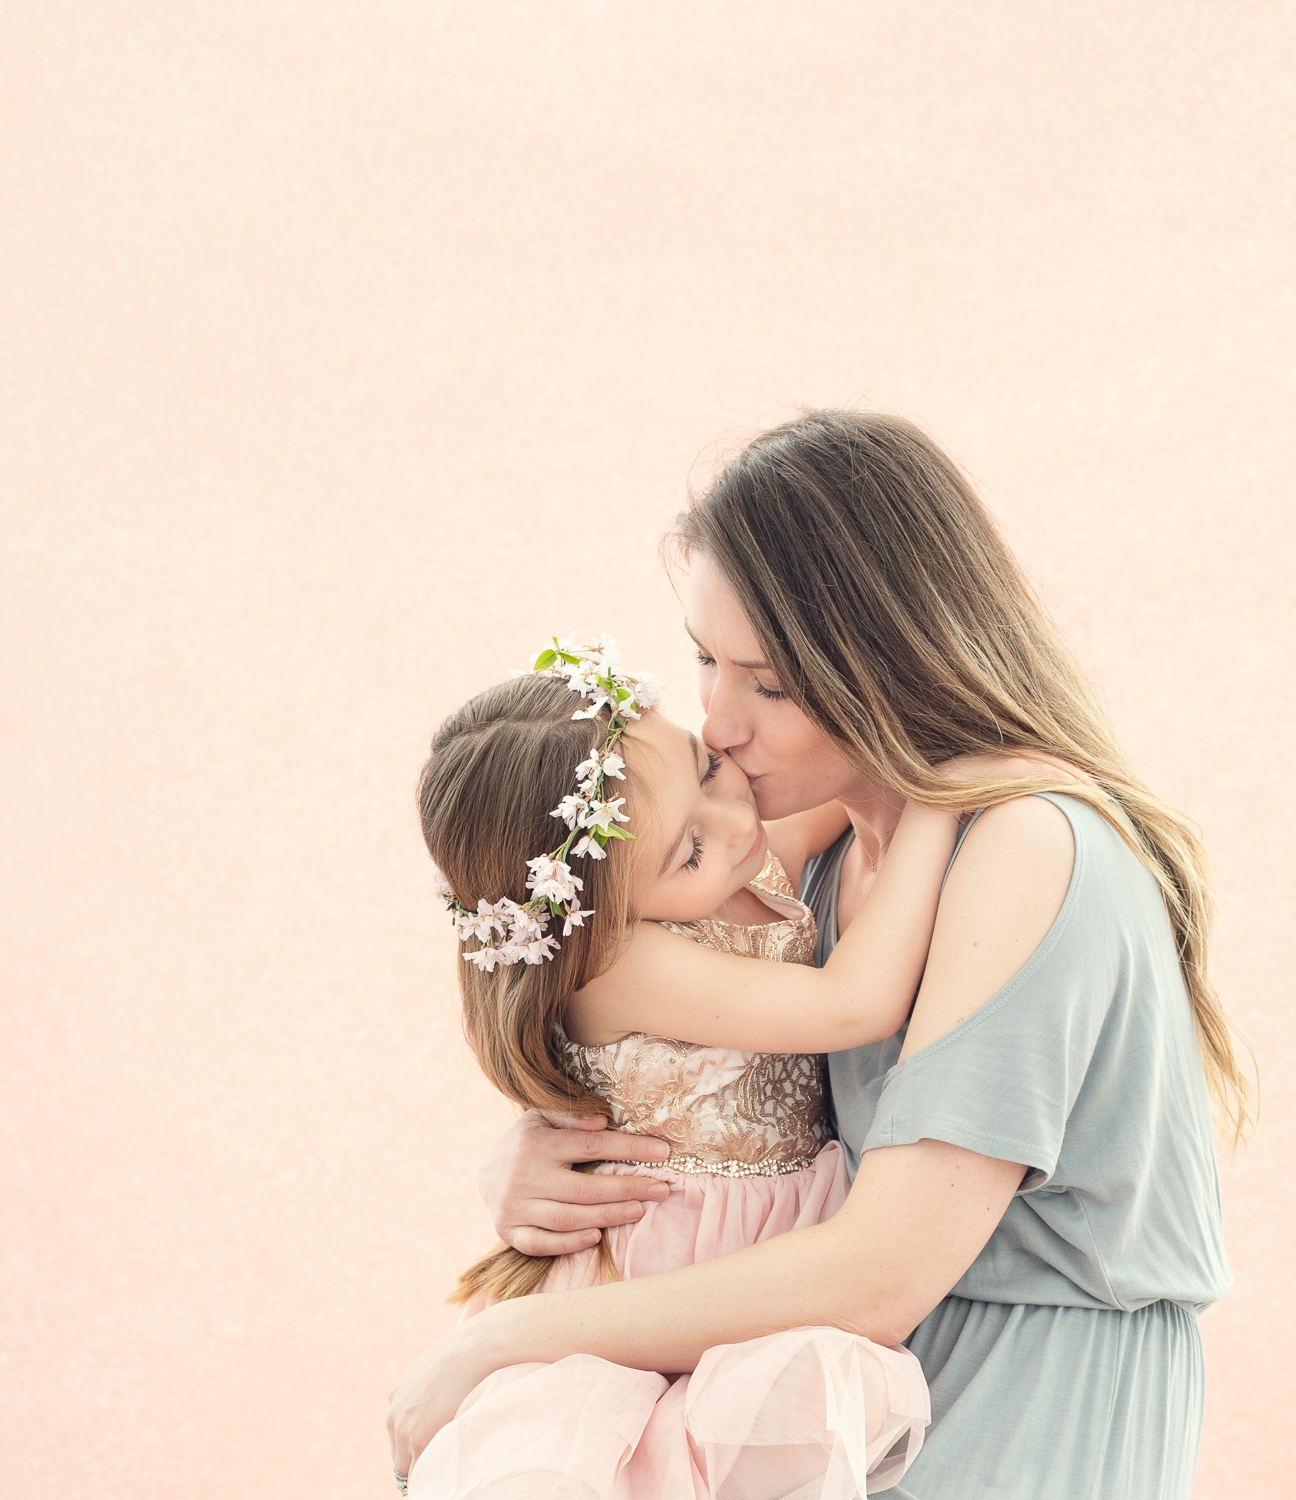 Portrait of a mother holding and kissing her young daughter on a pink backdrop